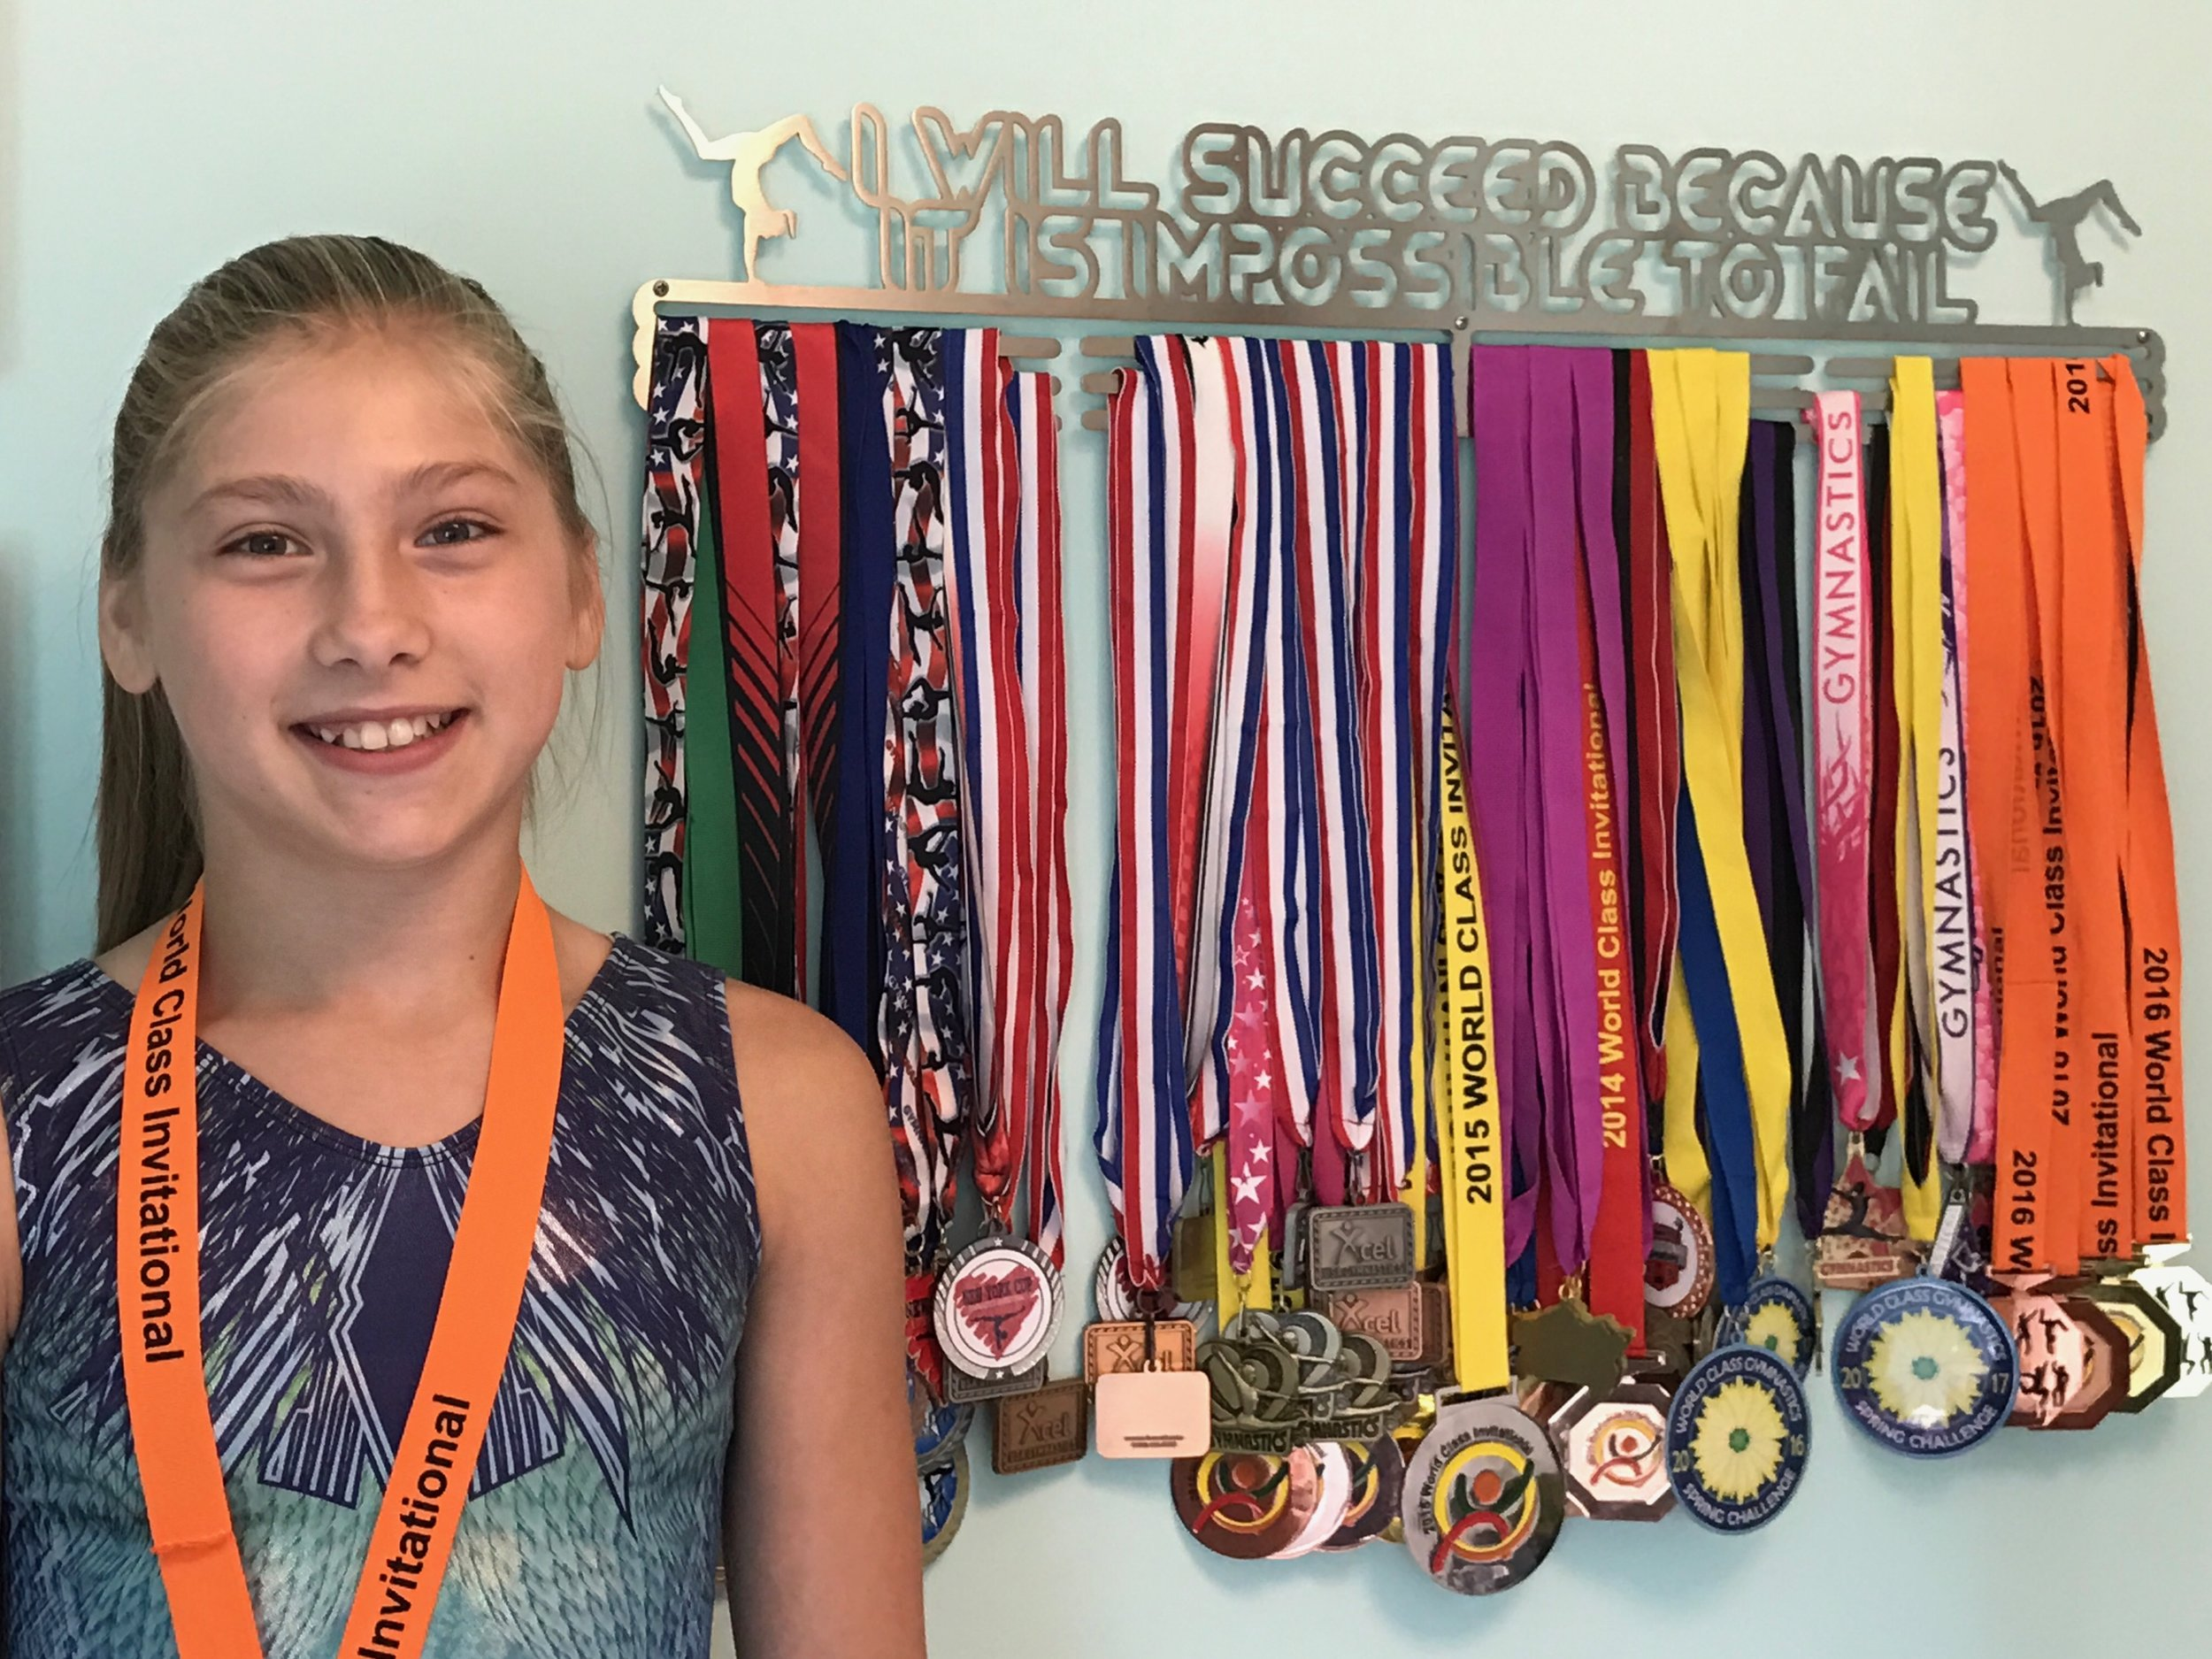 Calla, 12 year old gymnast, NY